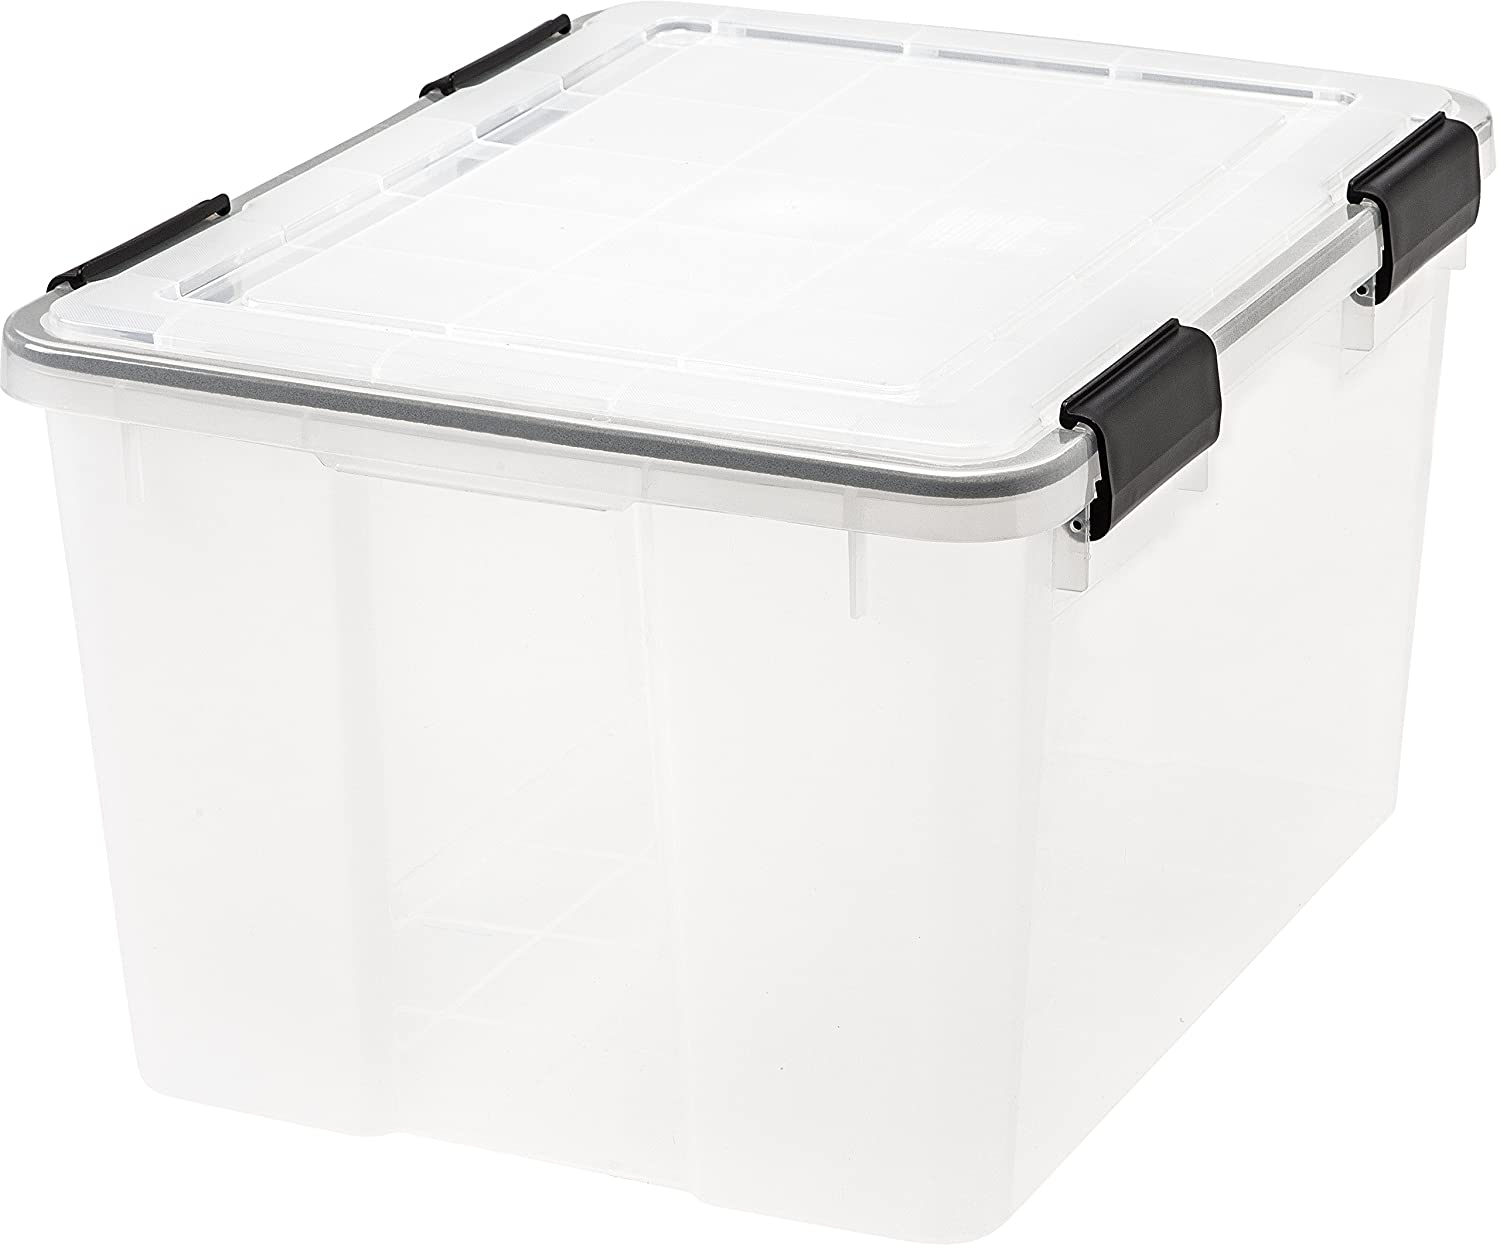 Must see Plastic Storage Bins With Lids - 81SGEMGW1pL  2018_801664.jpg